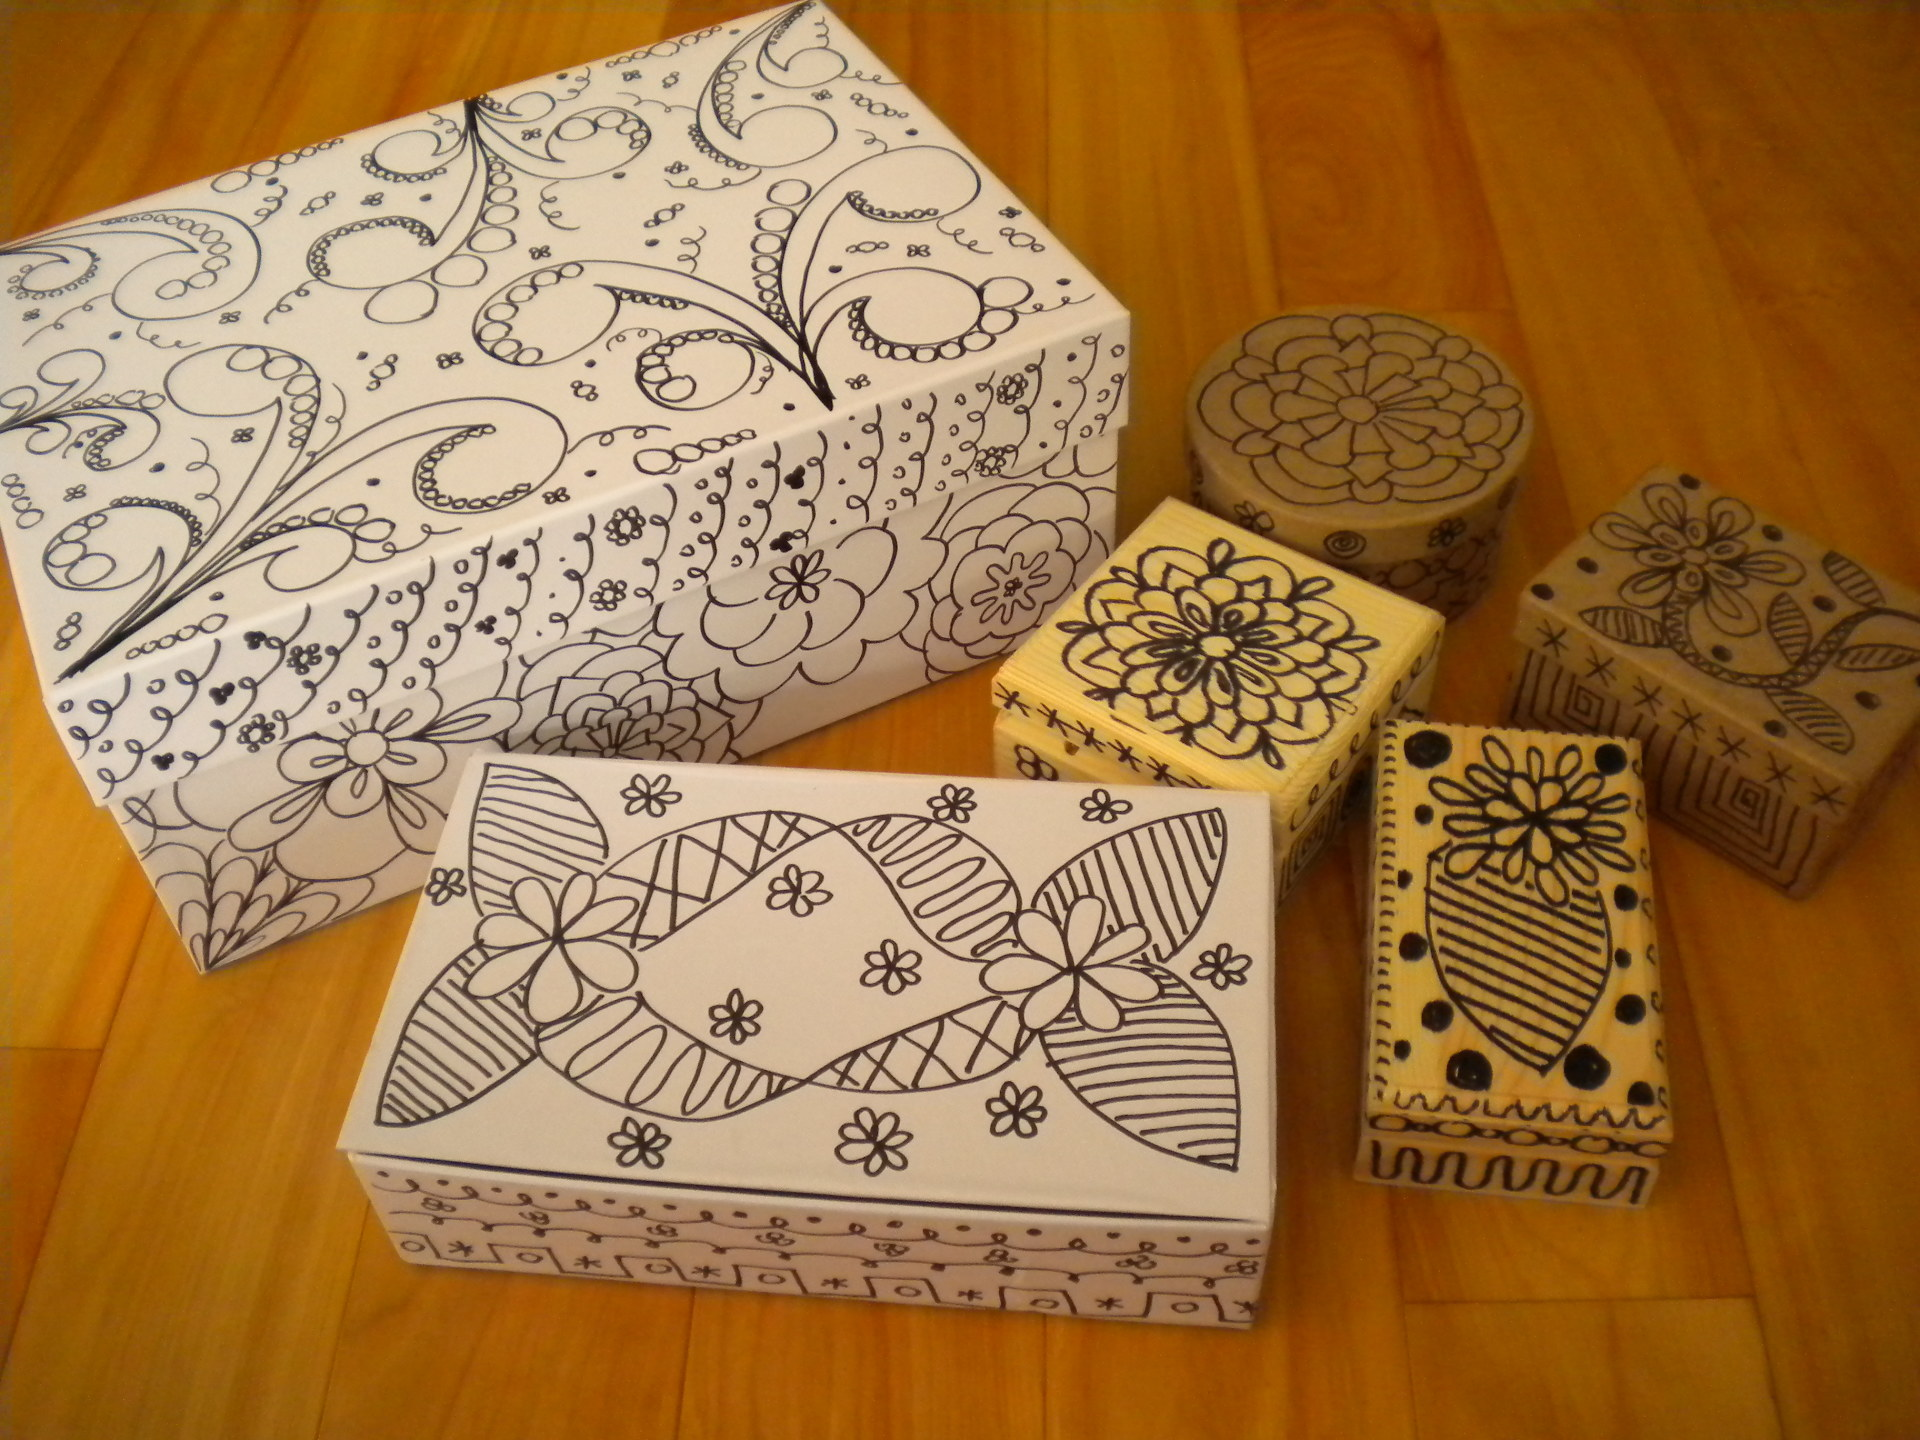 Photo of six boxes of different shapes and sizes covered in black and white artwork designs all over